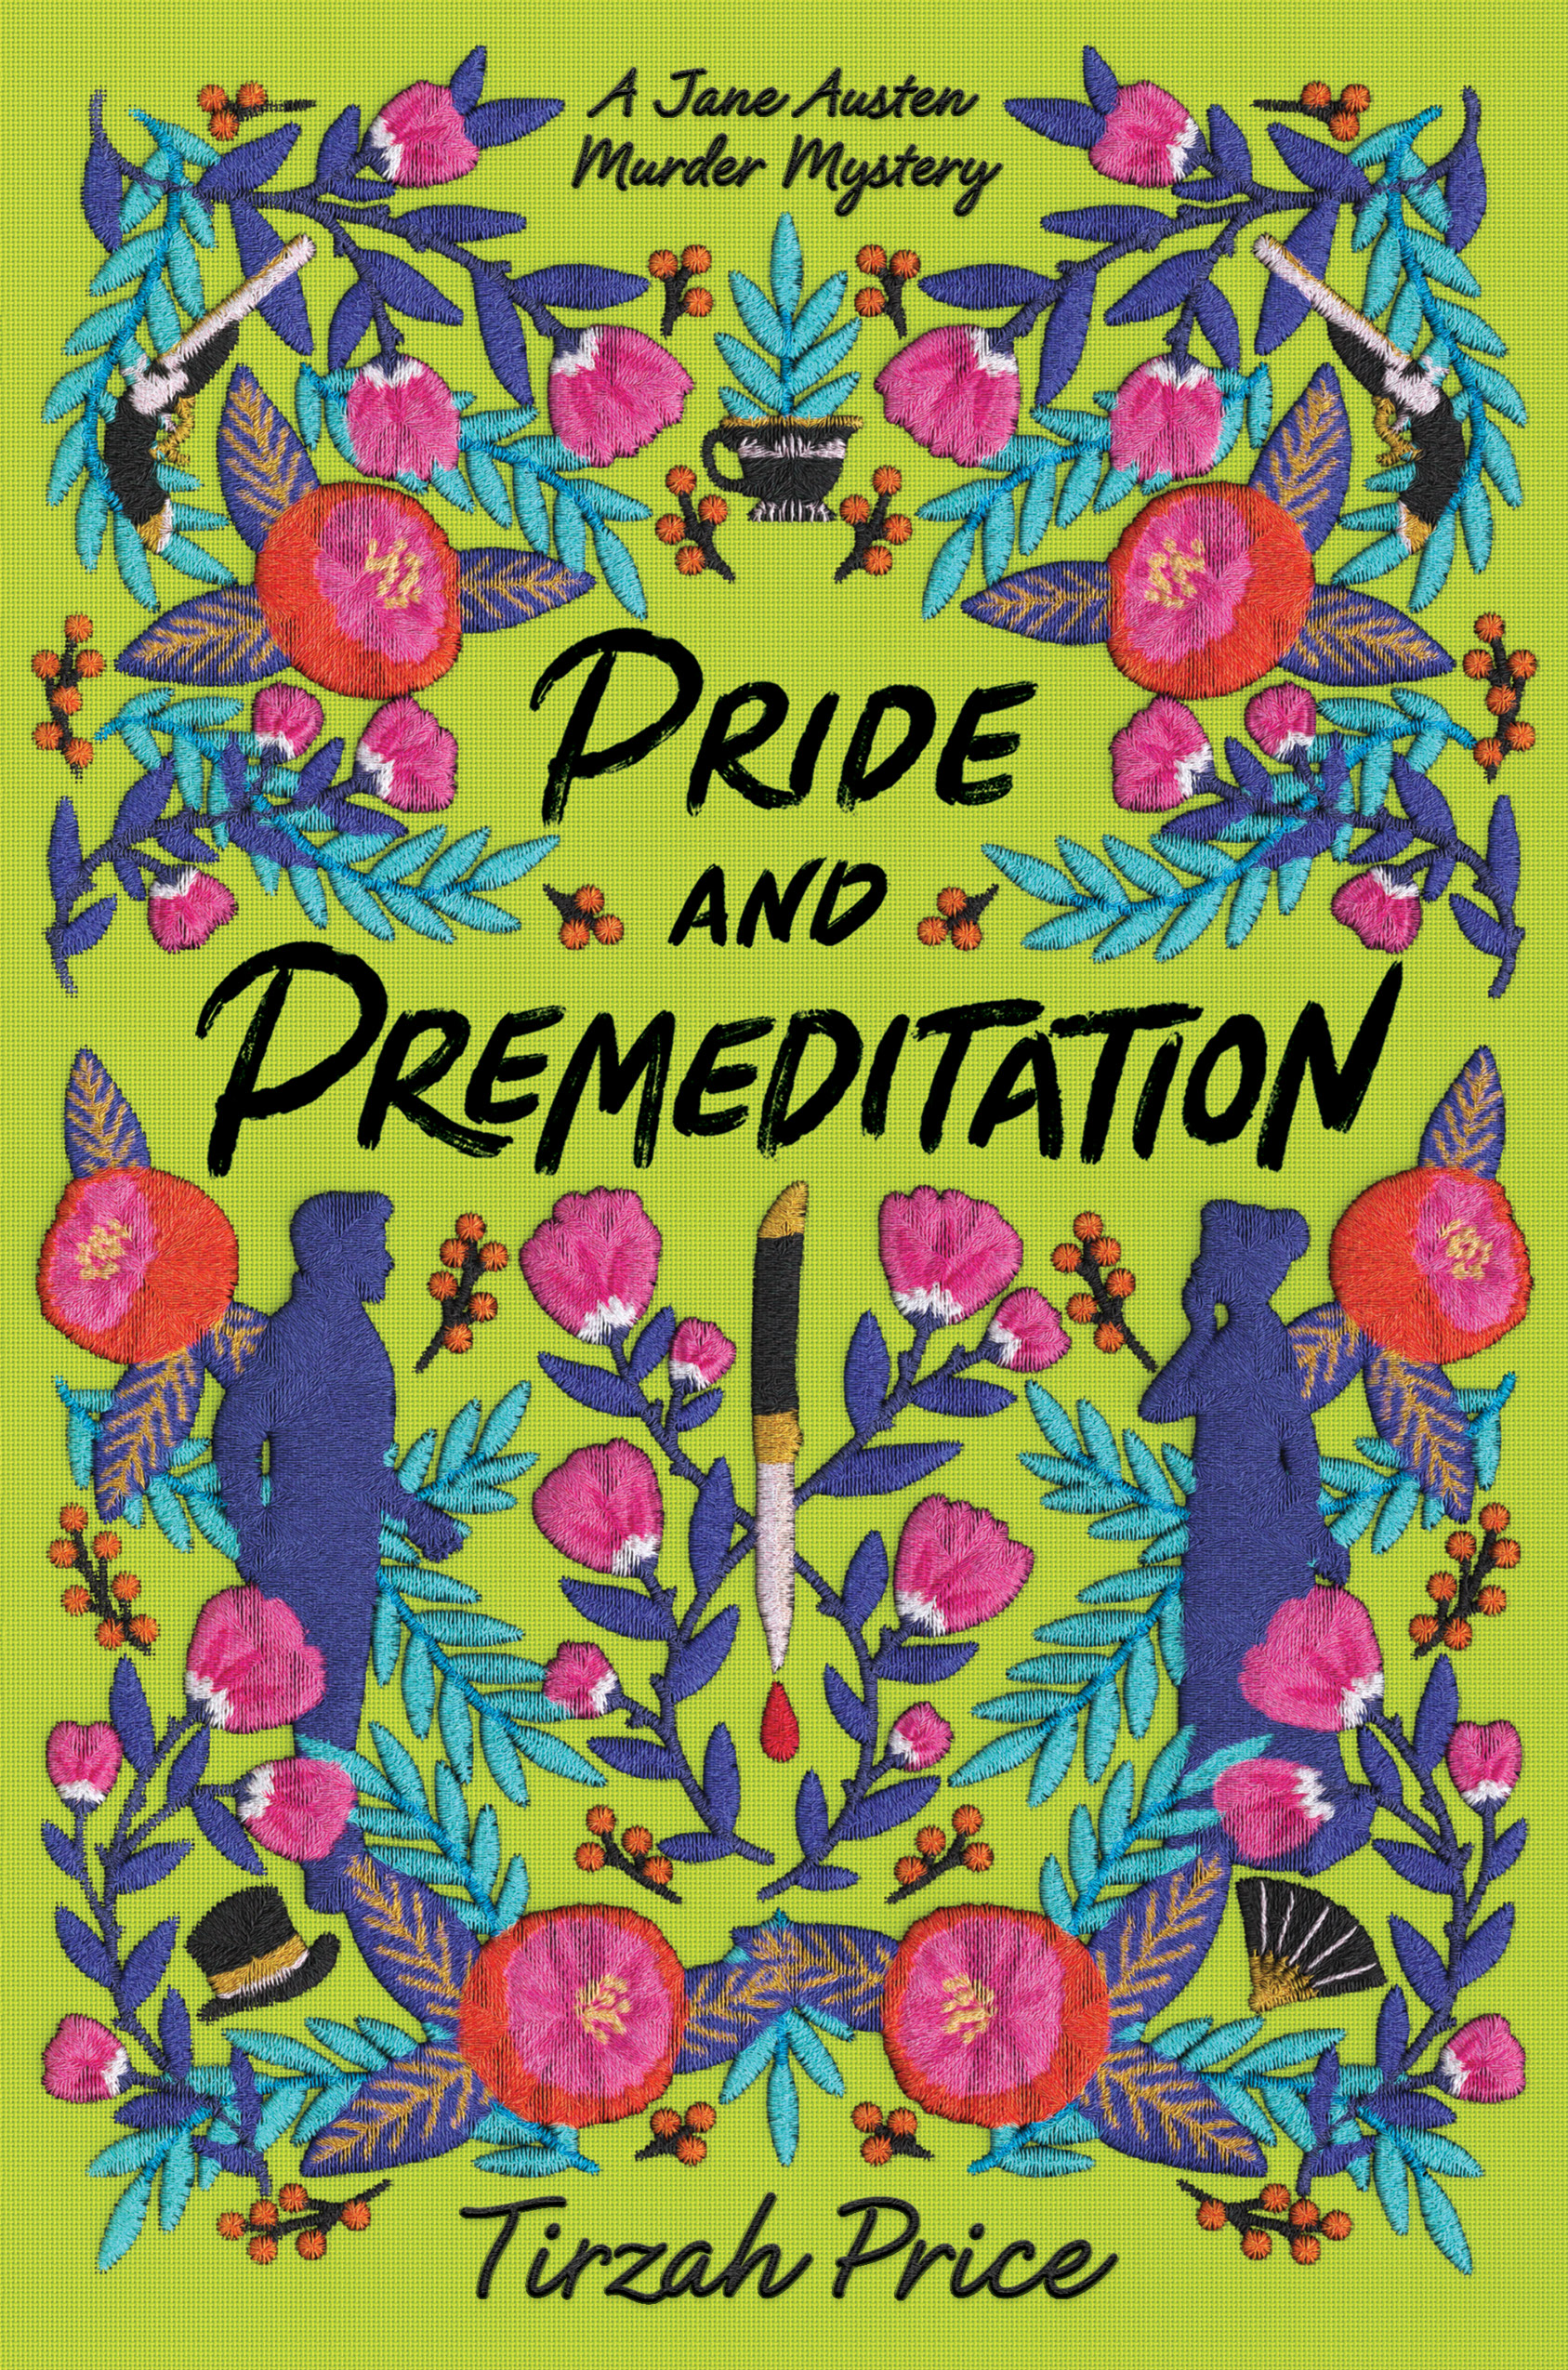 Review of Pride and Premeditation